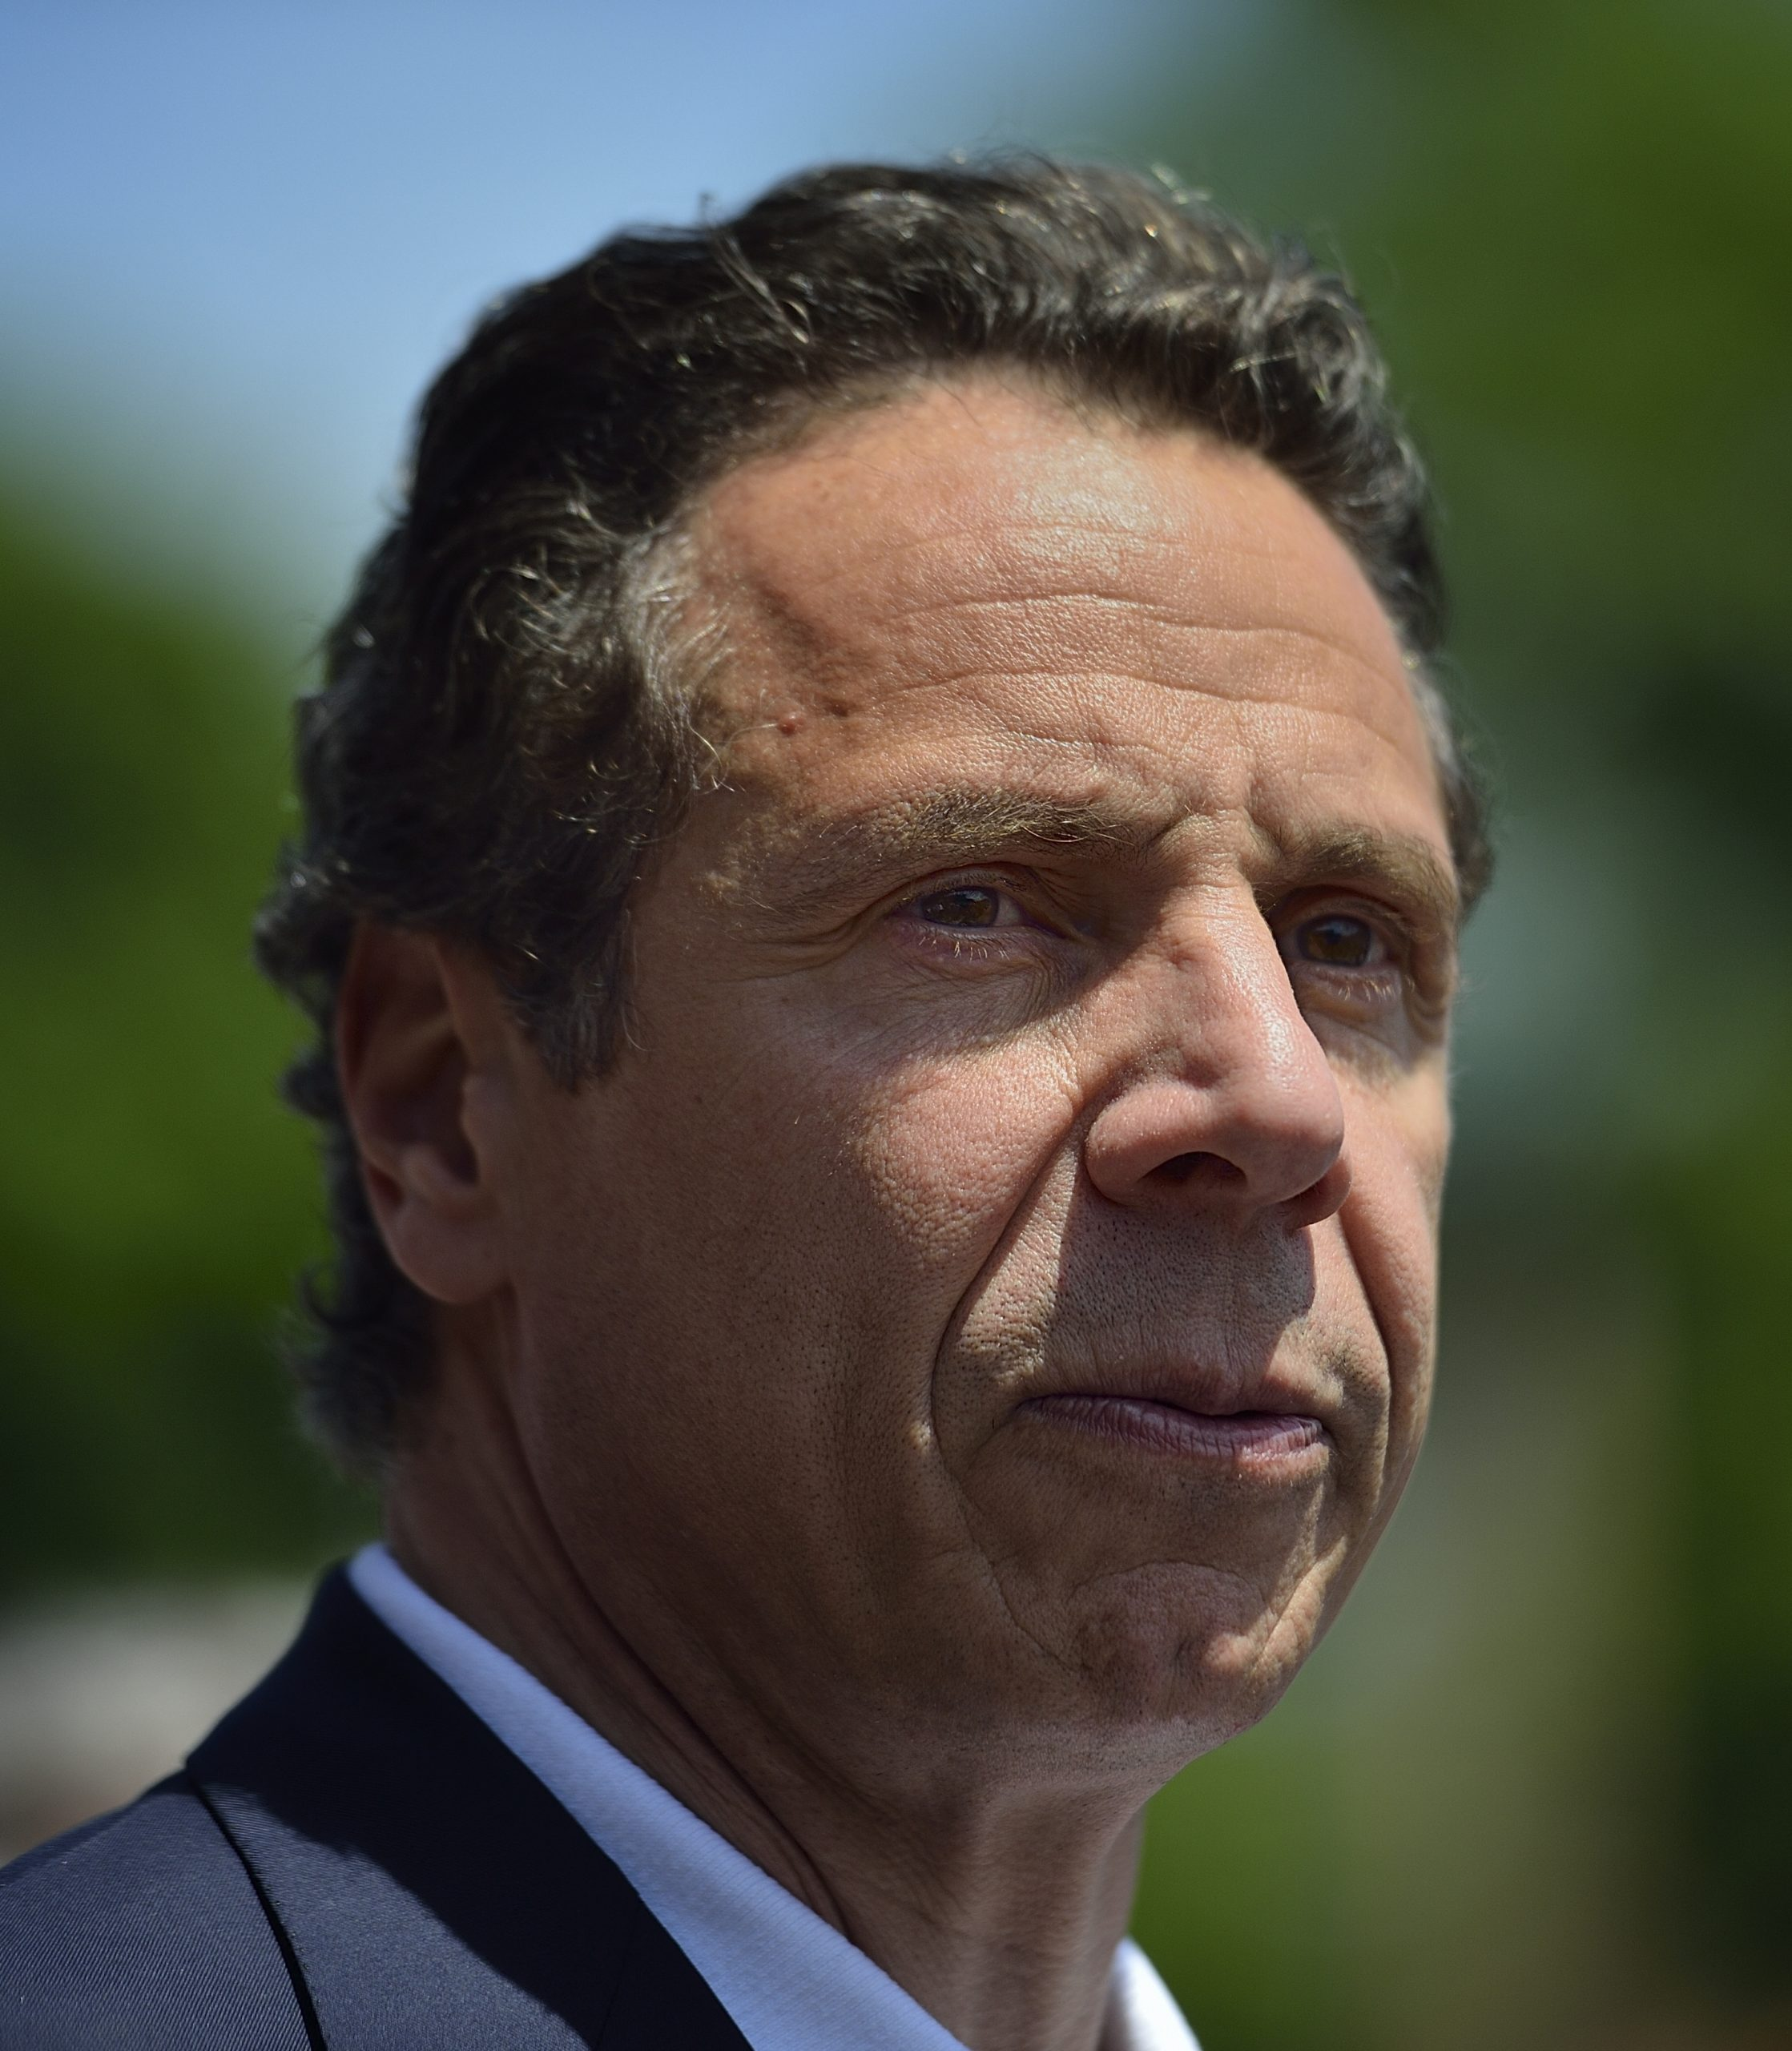 Gov. Cuomo Forced Nursing Homes To Take COVID-19 Patients, Spiking Elderly Deaths - CD Media